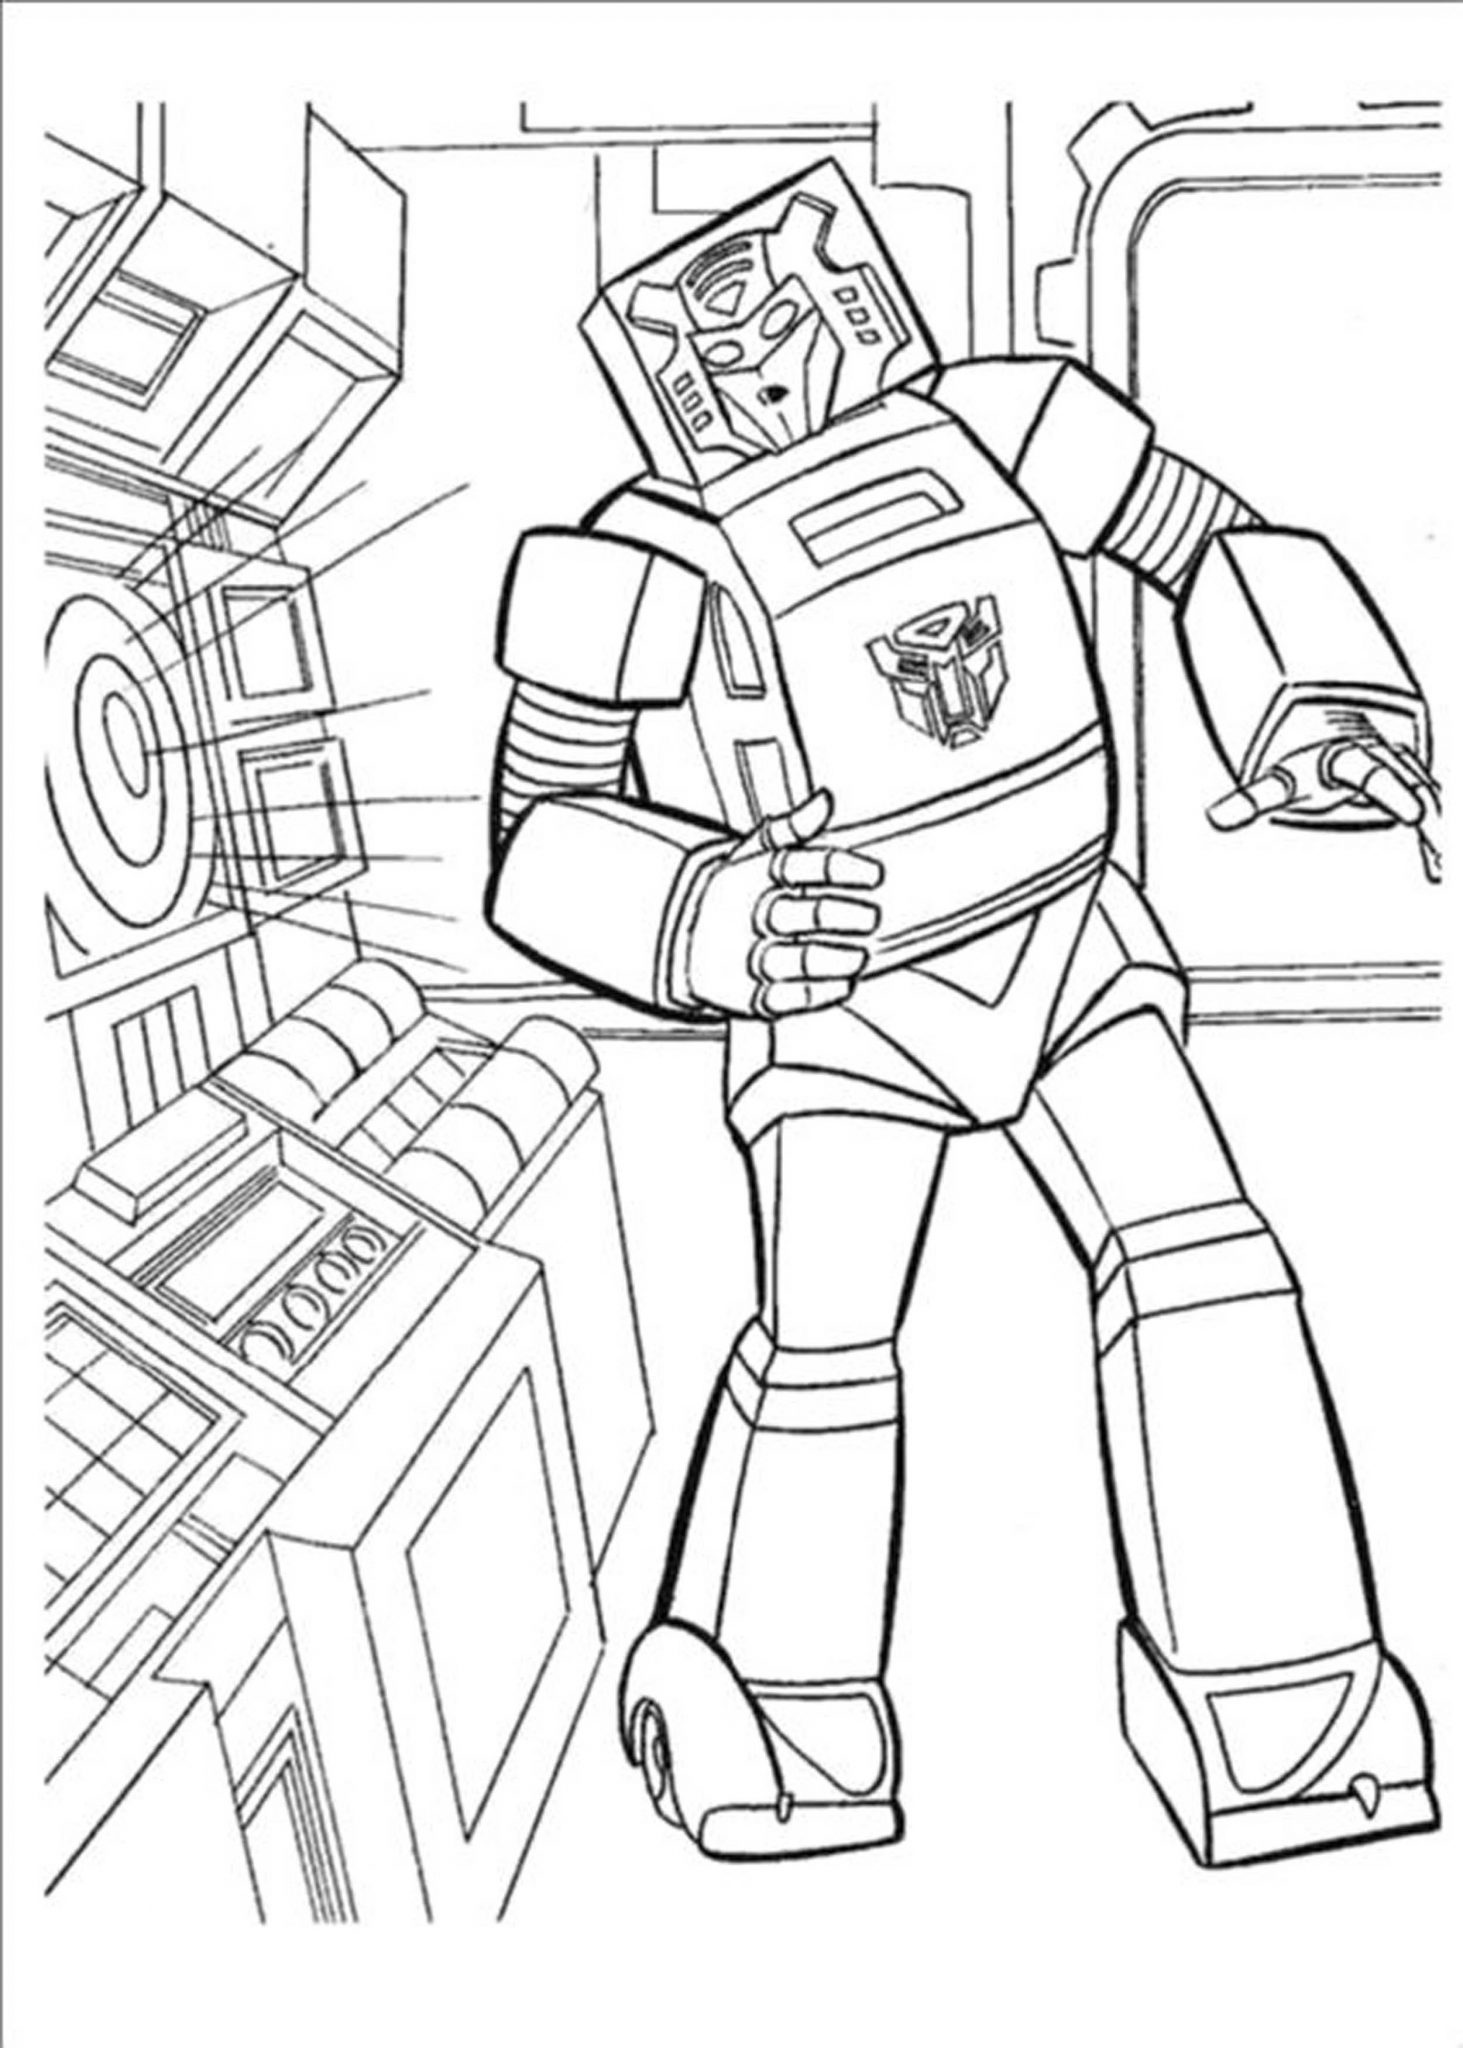 coloring pages transformers free printable transformers coloring pages for kids transformers pages coloring